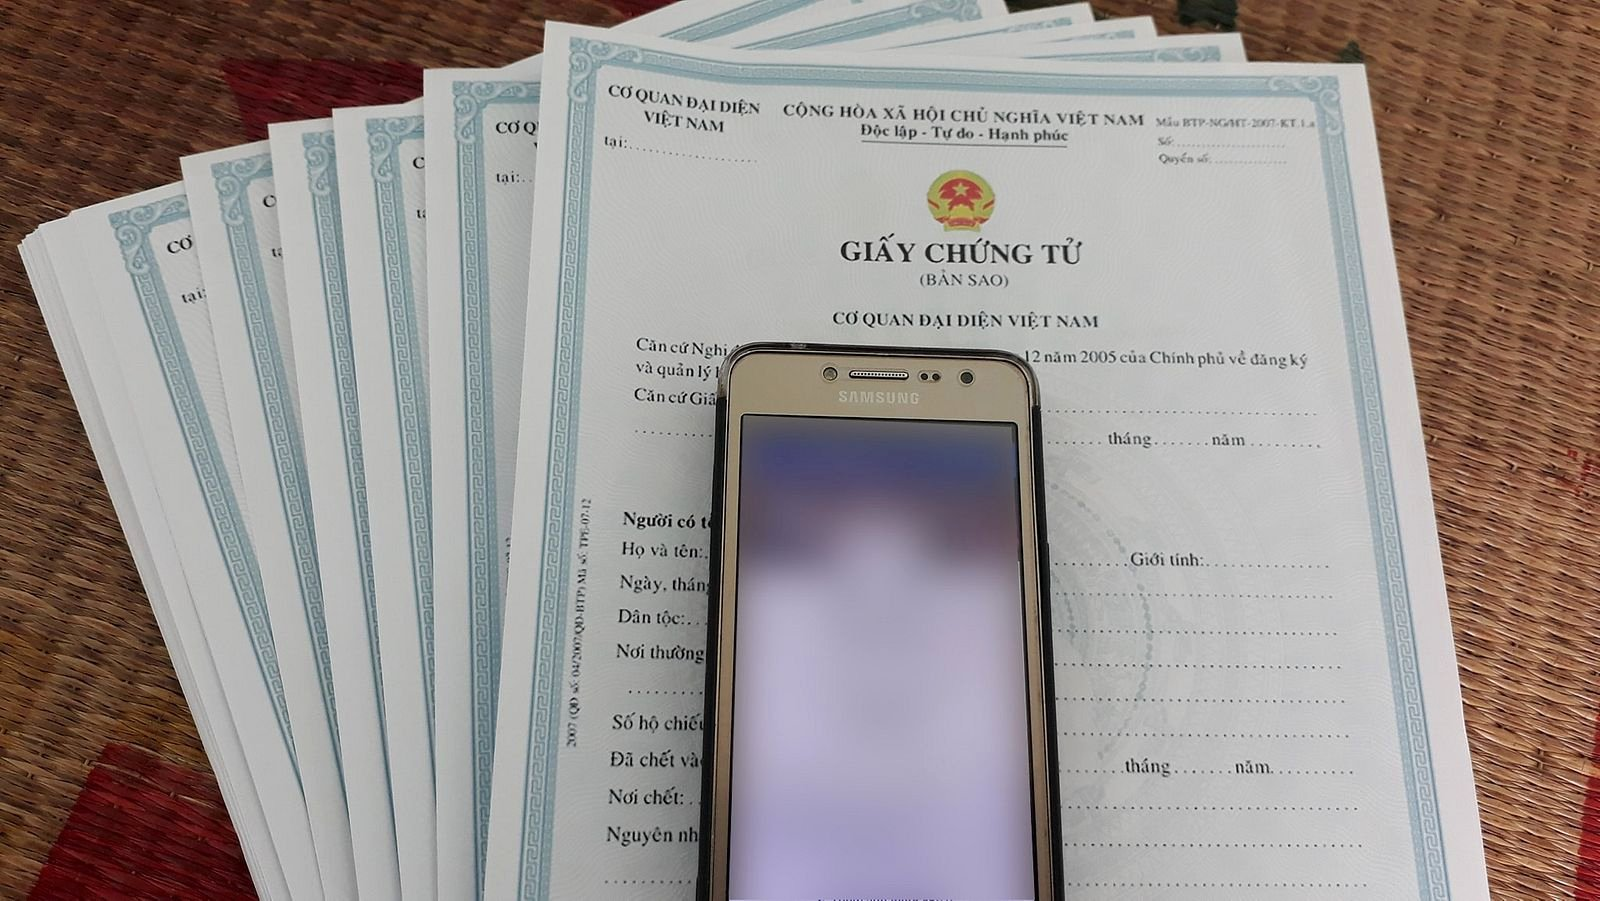 in vietnam fake certificates are weaponized to hack accounts